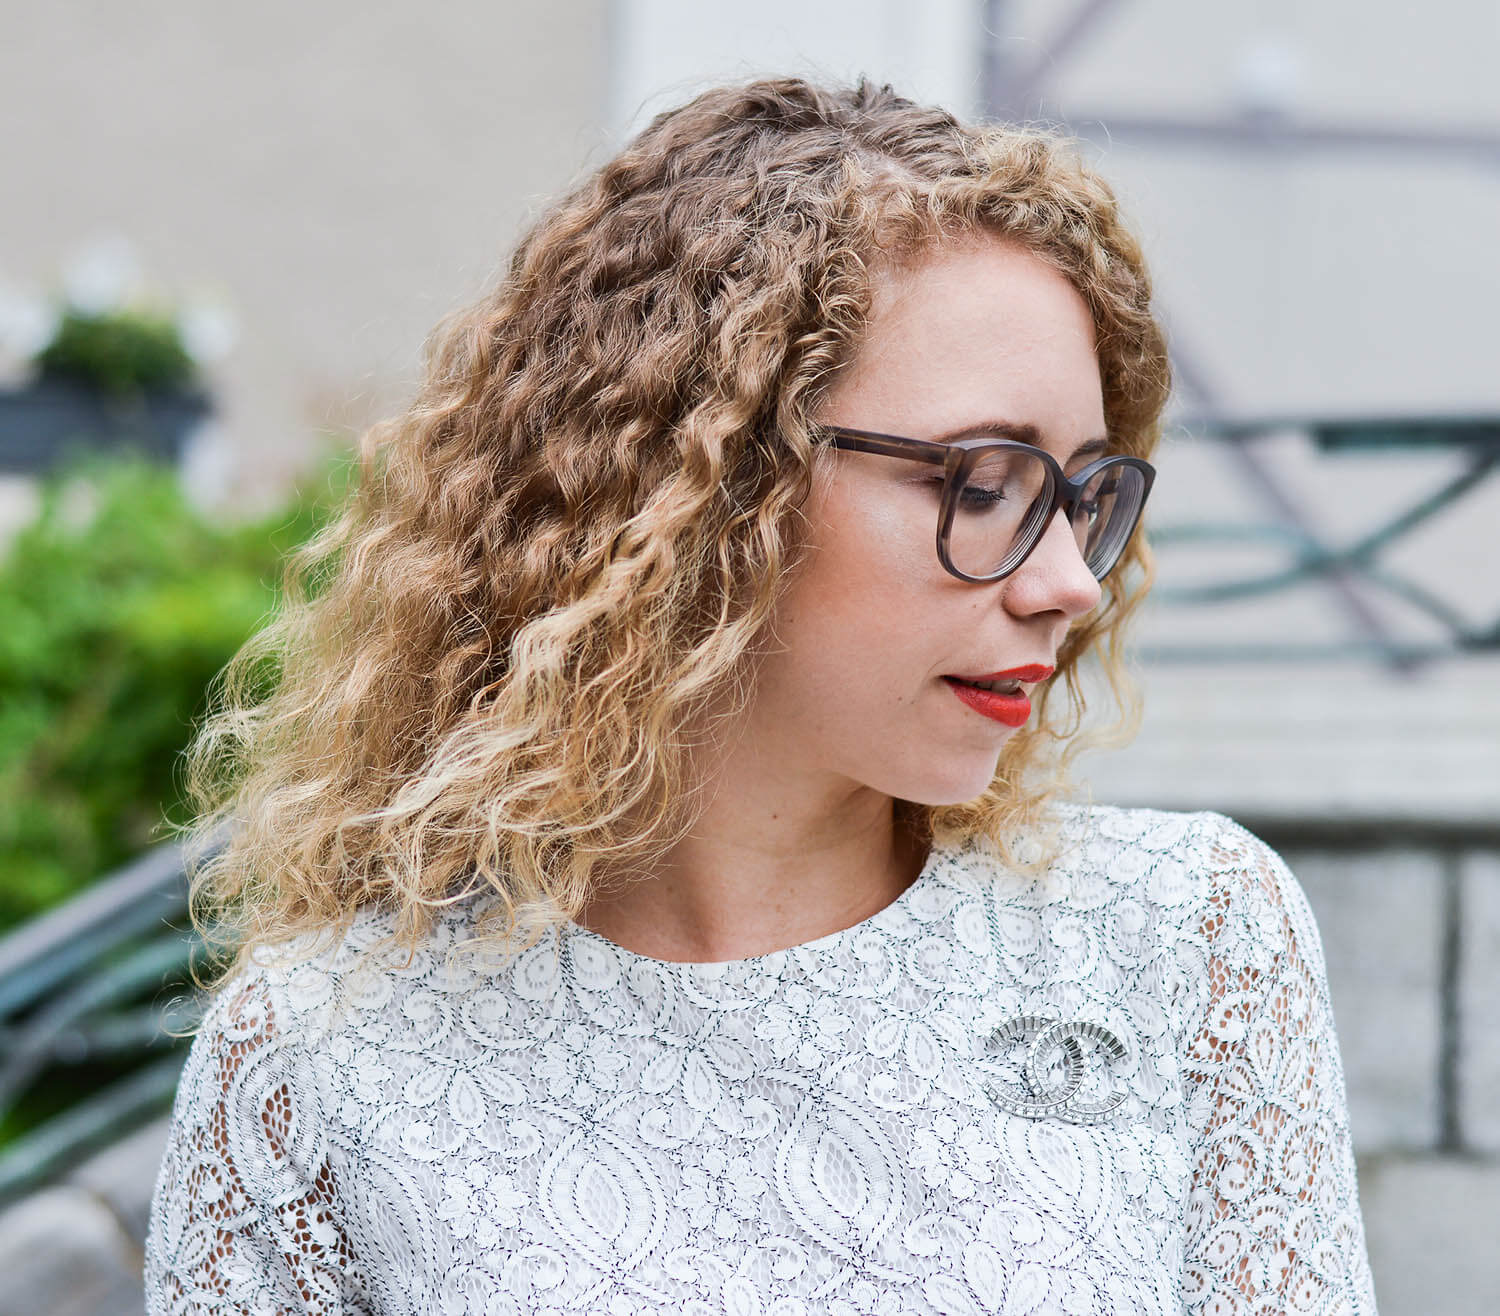 Kationette-fashionblog-nrw-Outfit-Wedding-Update-white-Lace-Dress-Adiletten